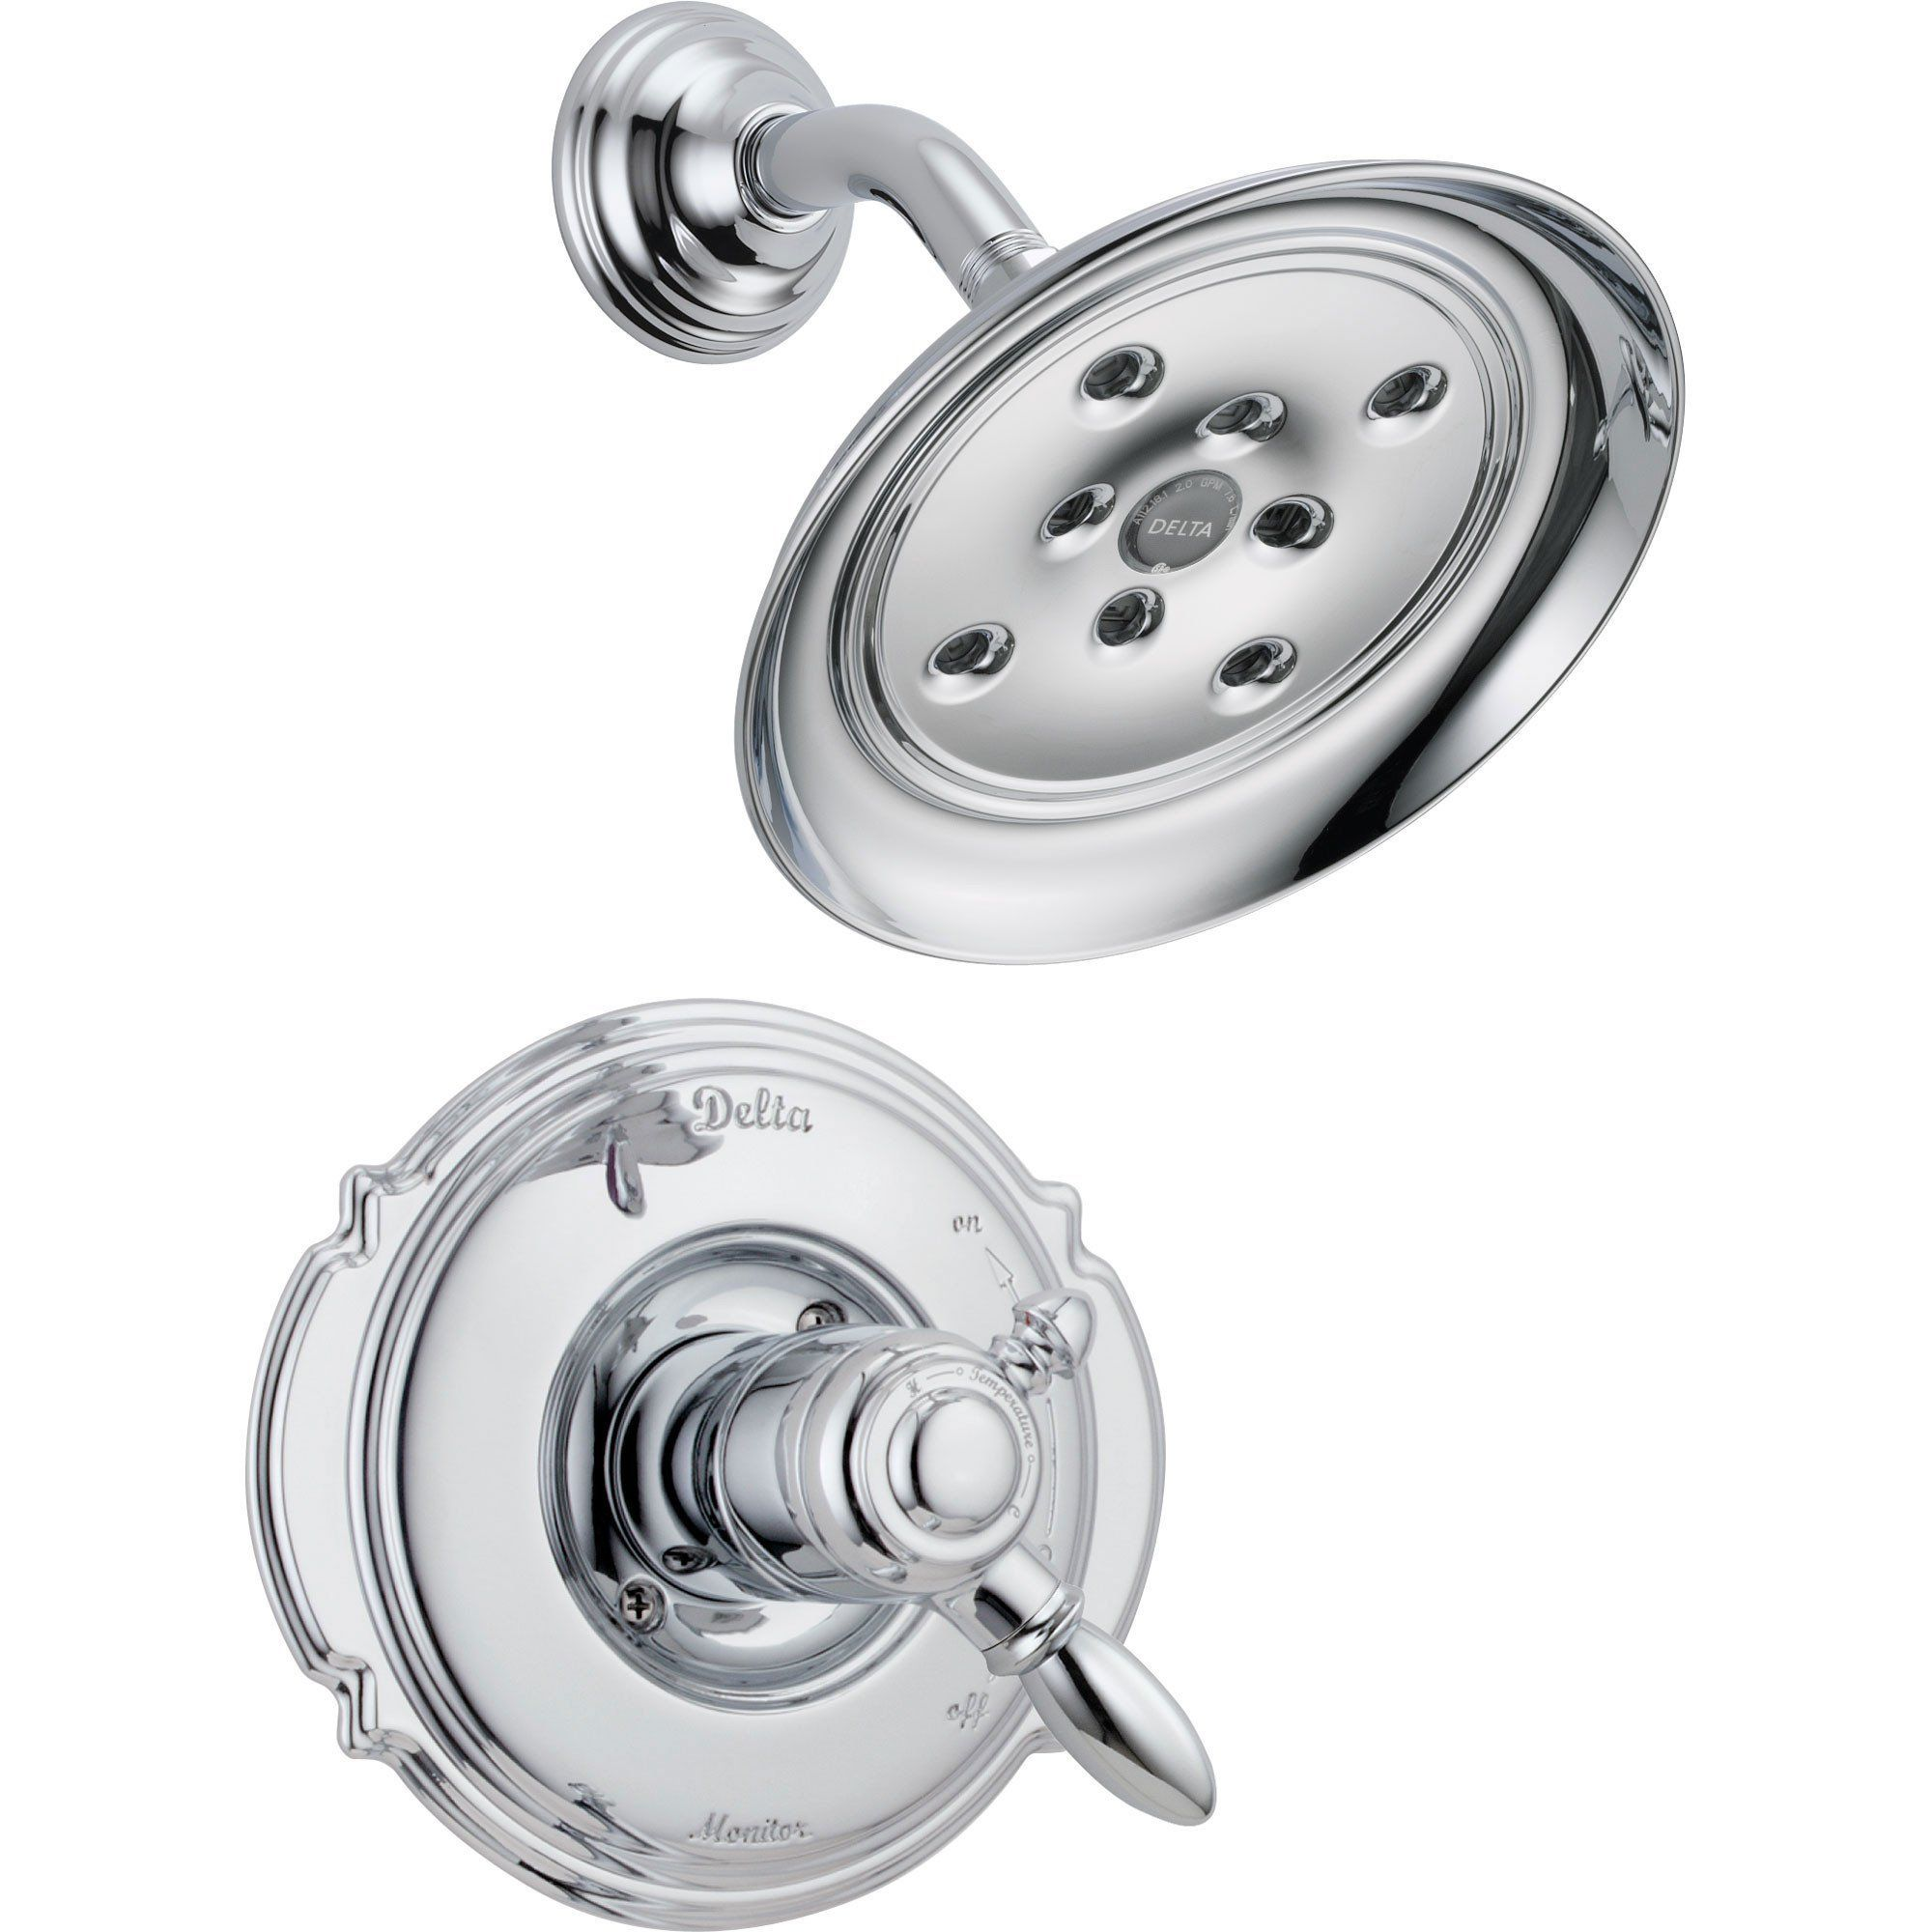 Delta Victorian Dual Control Temp Volume Chrome Shower Faucet With